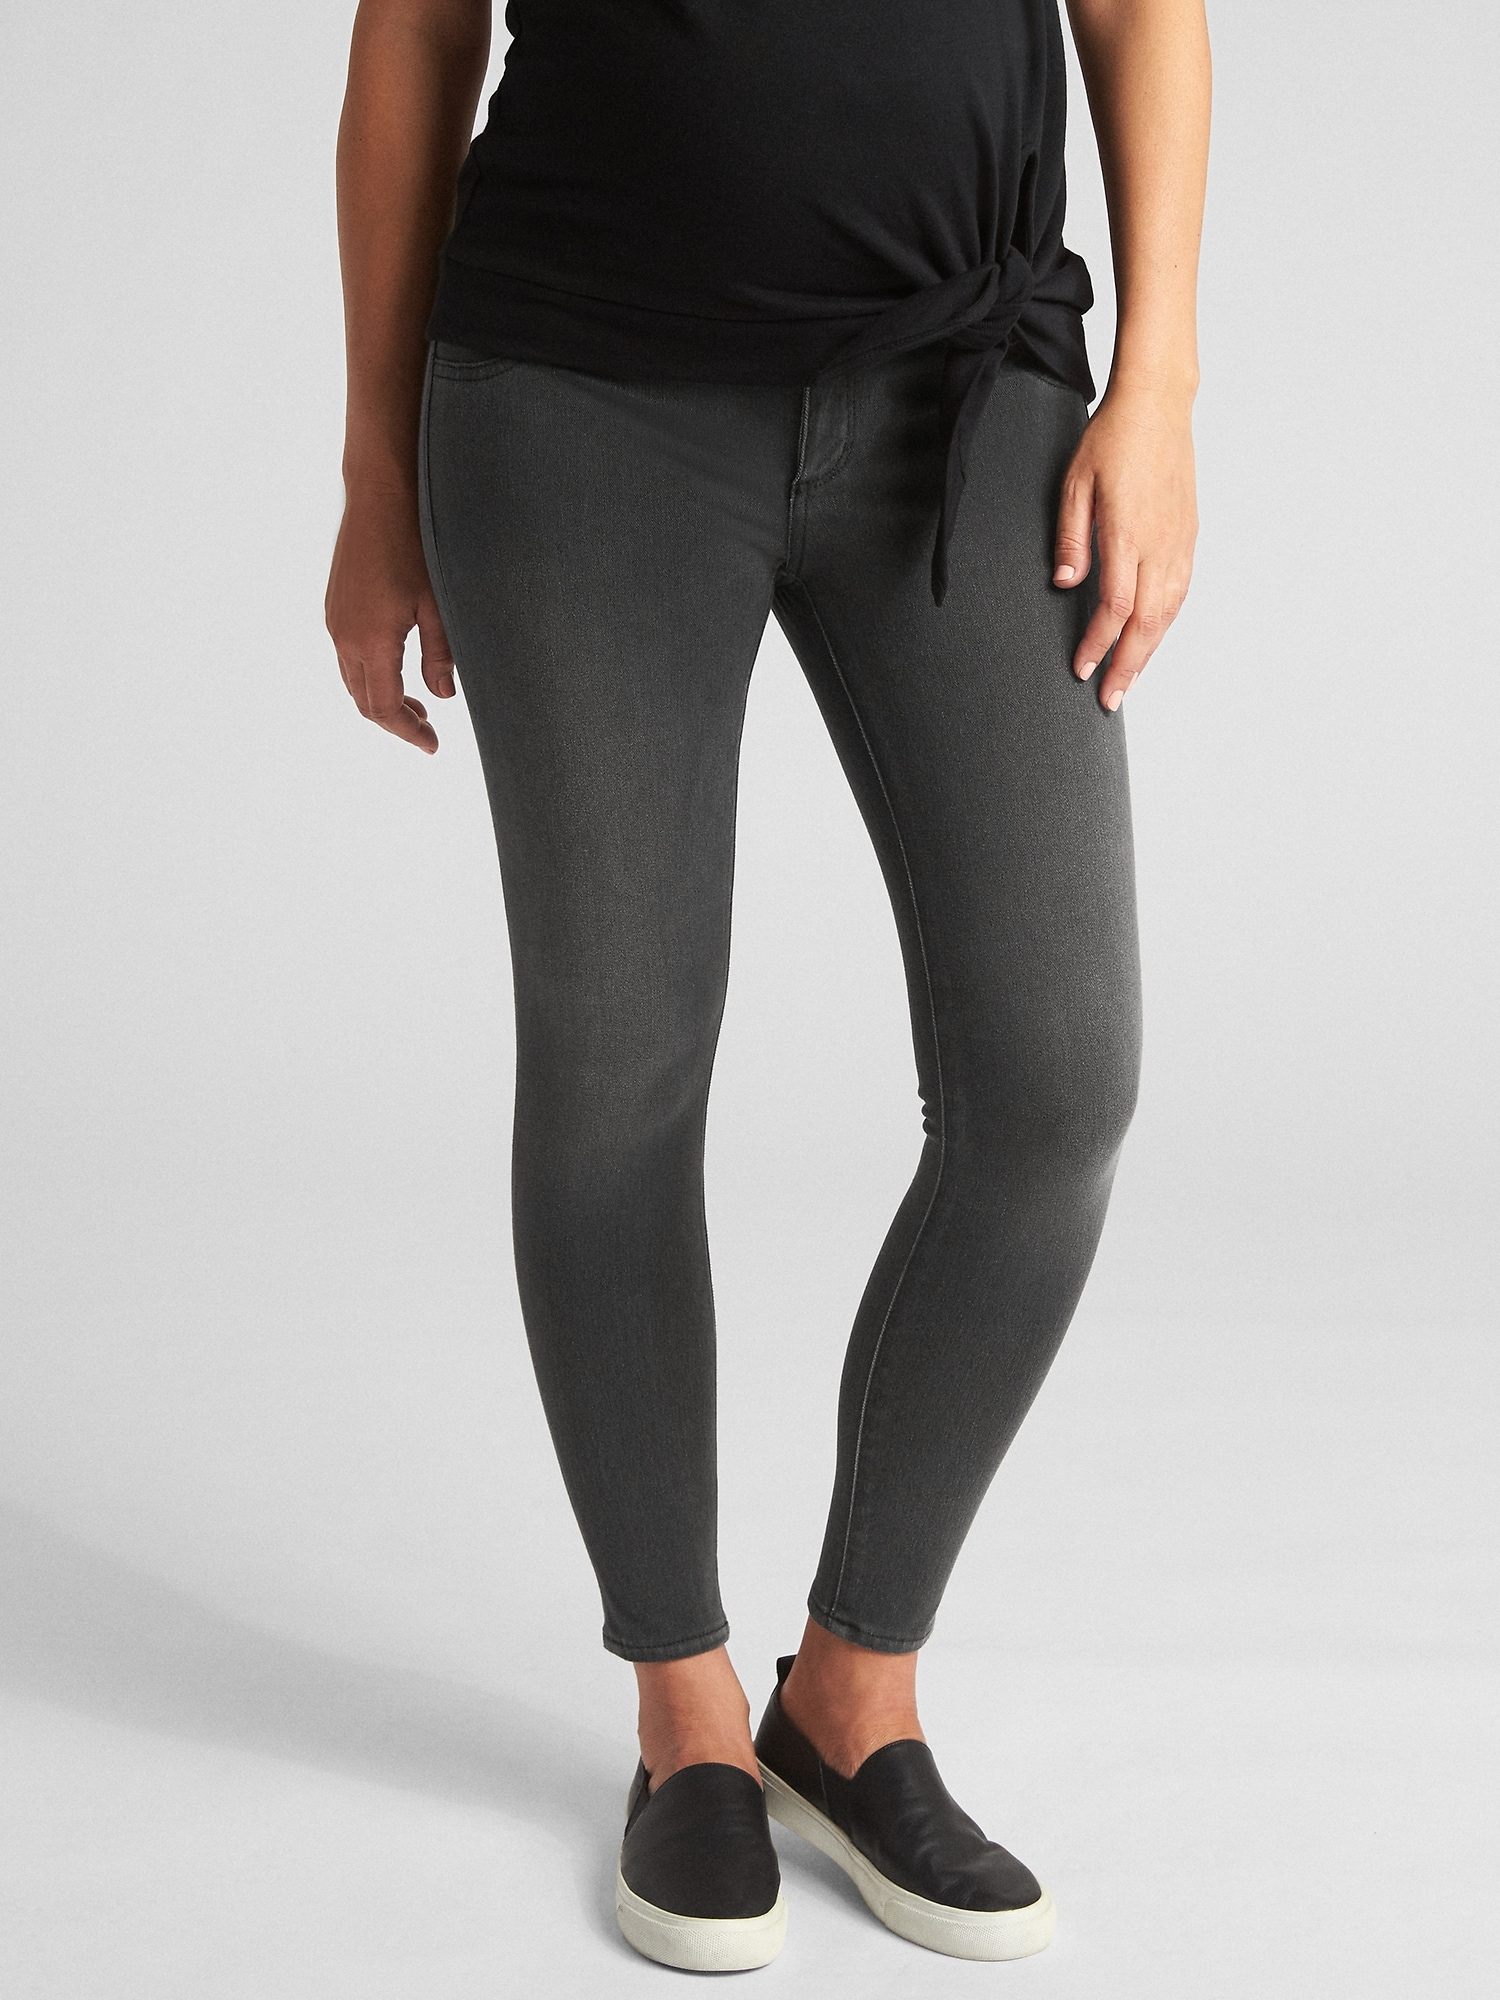 c0a332f36e Maternity Inset Panel Knit Favorite Ankle Jeggings | Gap